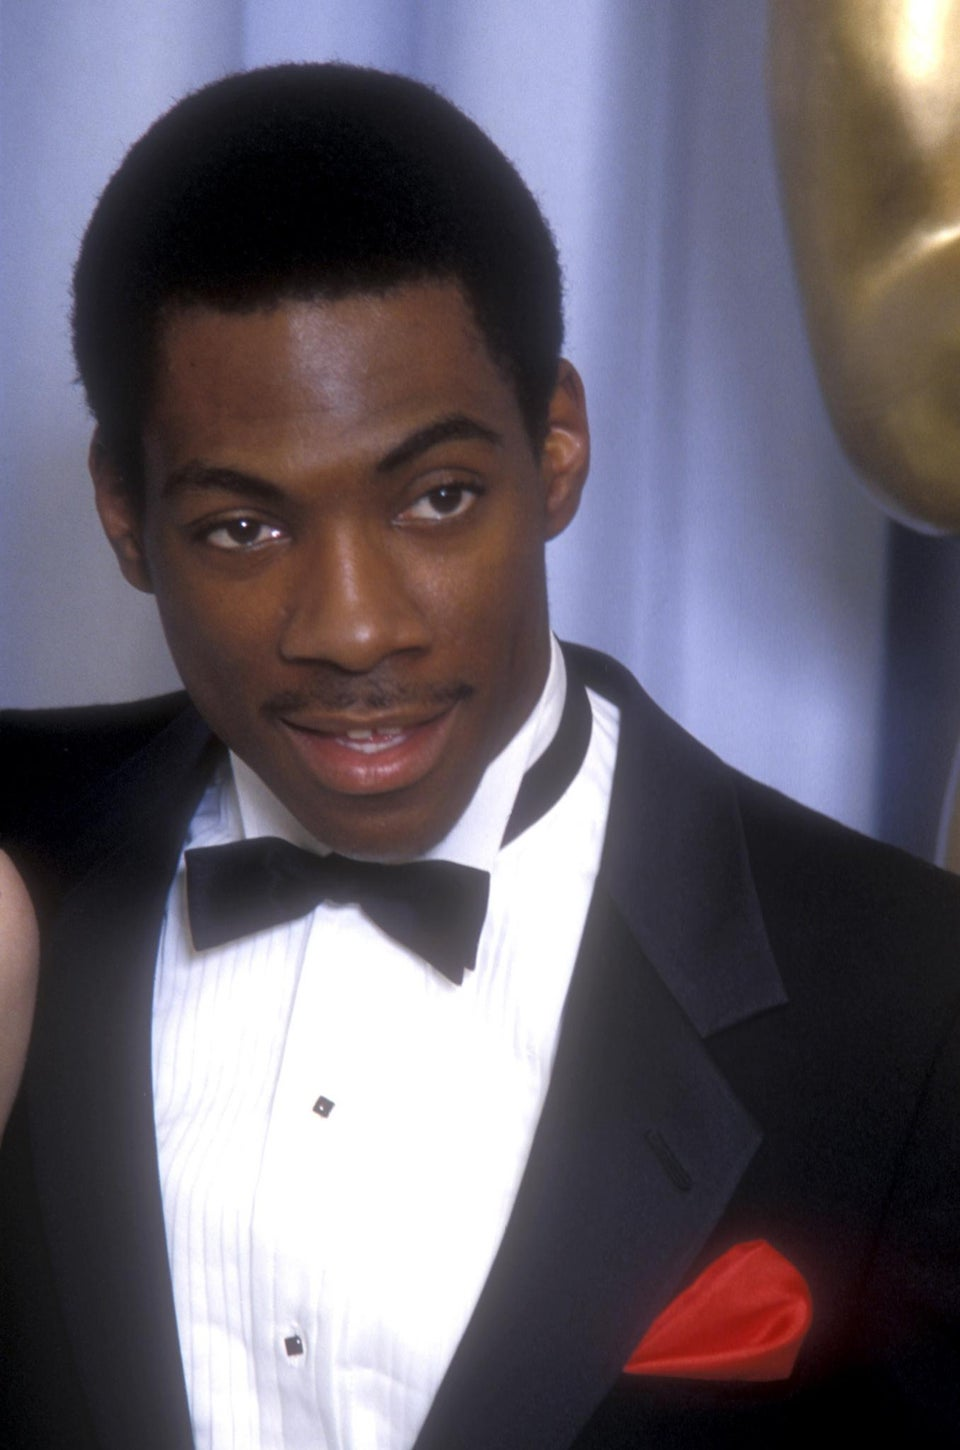 Here's What Eddie Murphy Said About Lack of Diversity At the Oscars Way Back in 1988